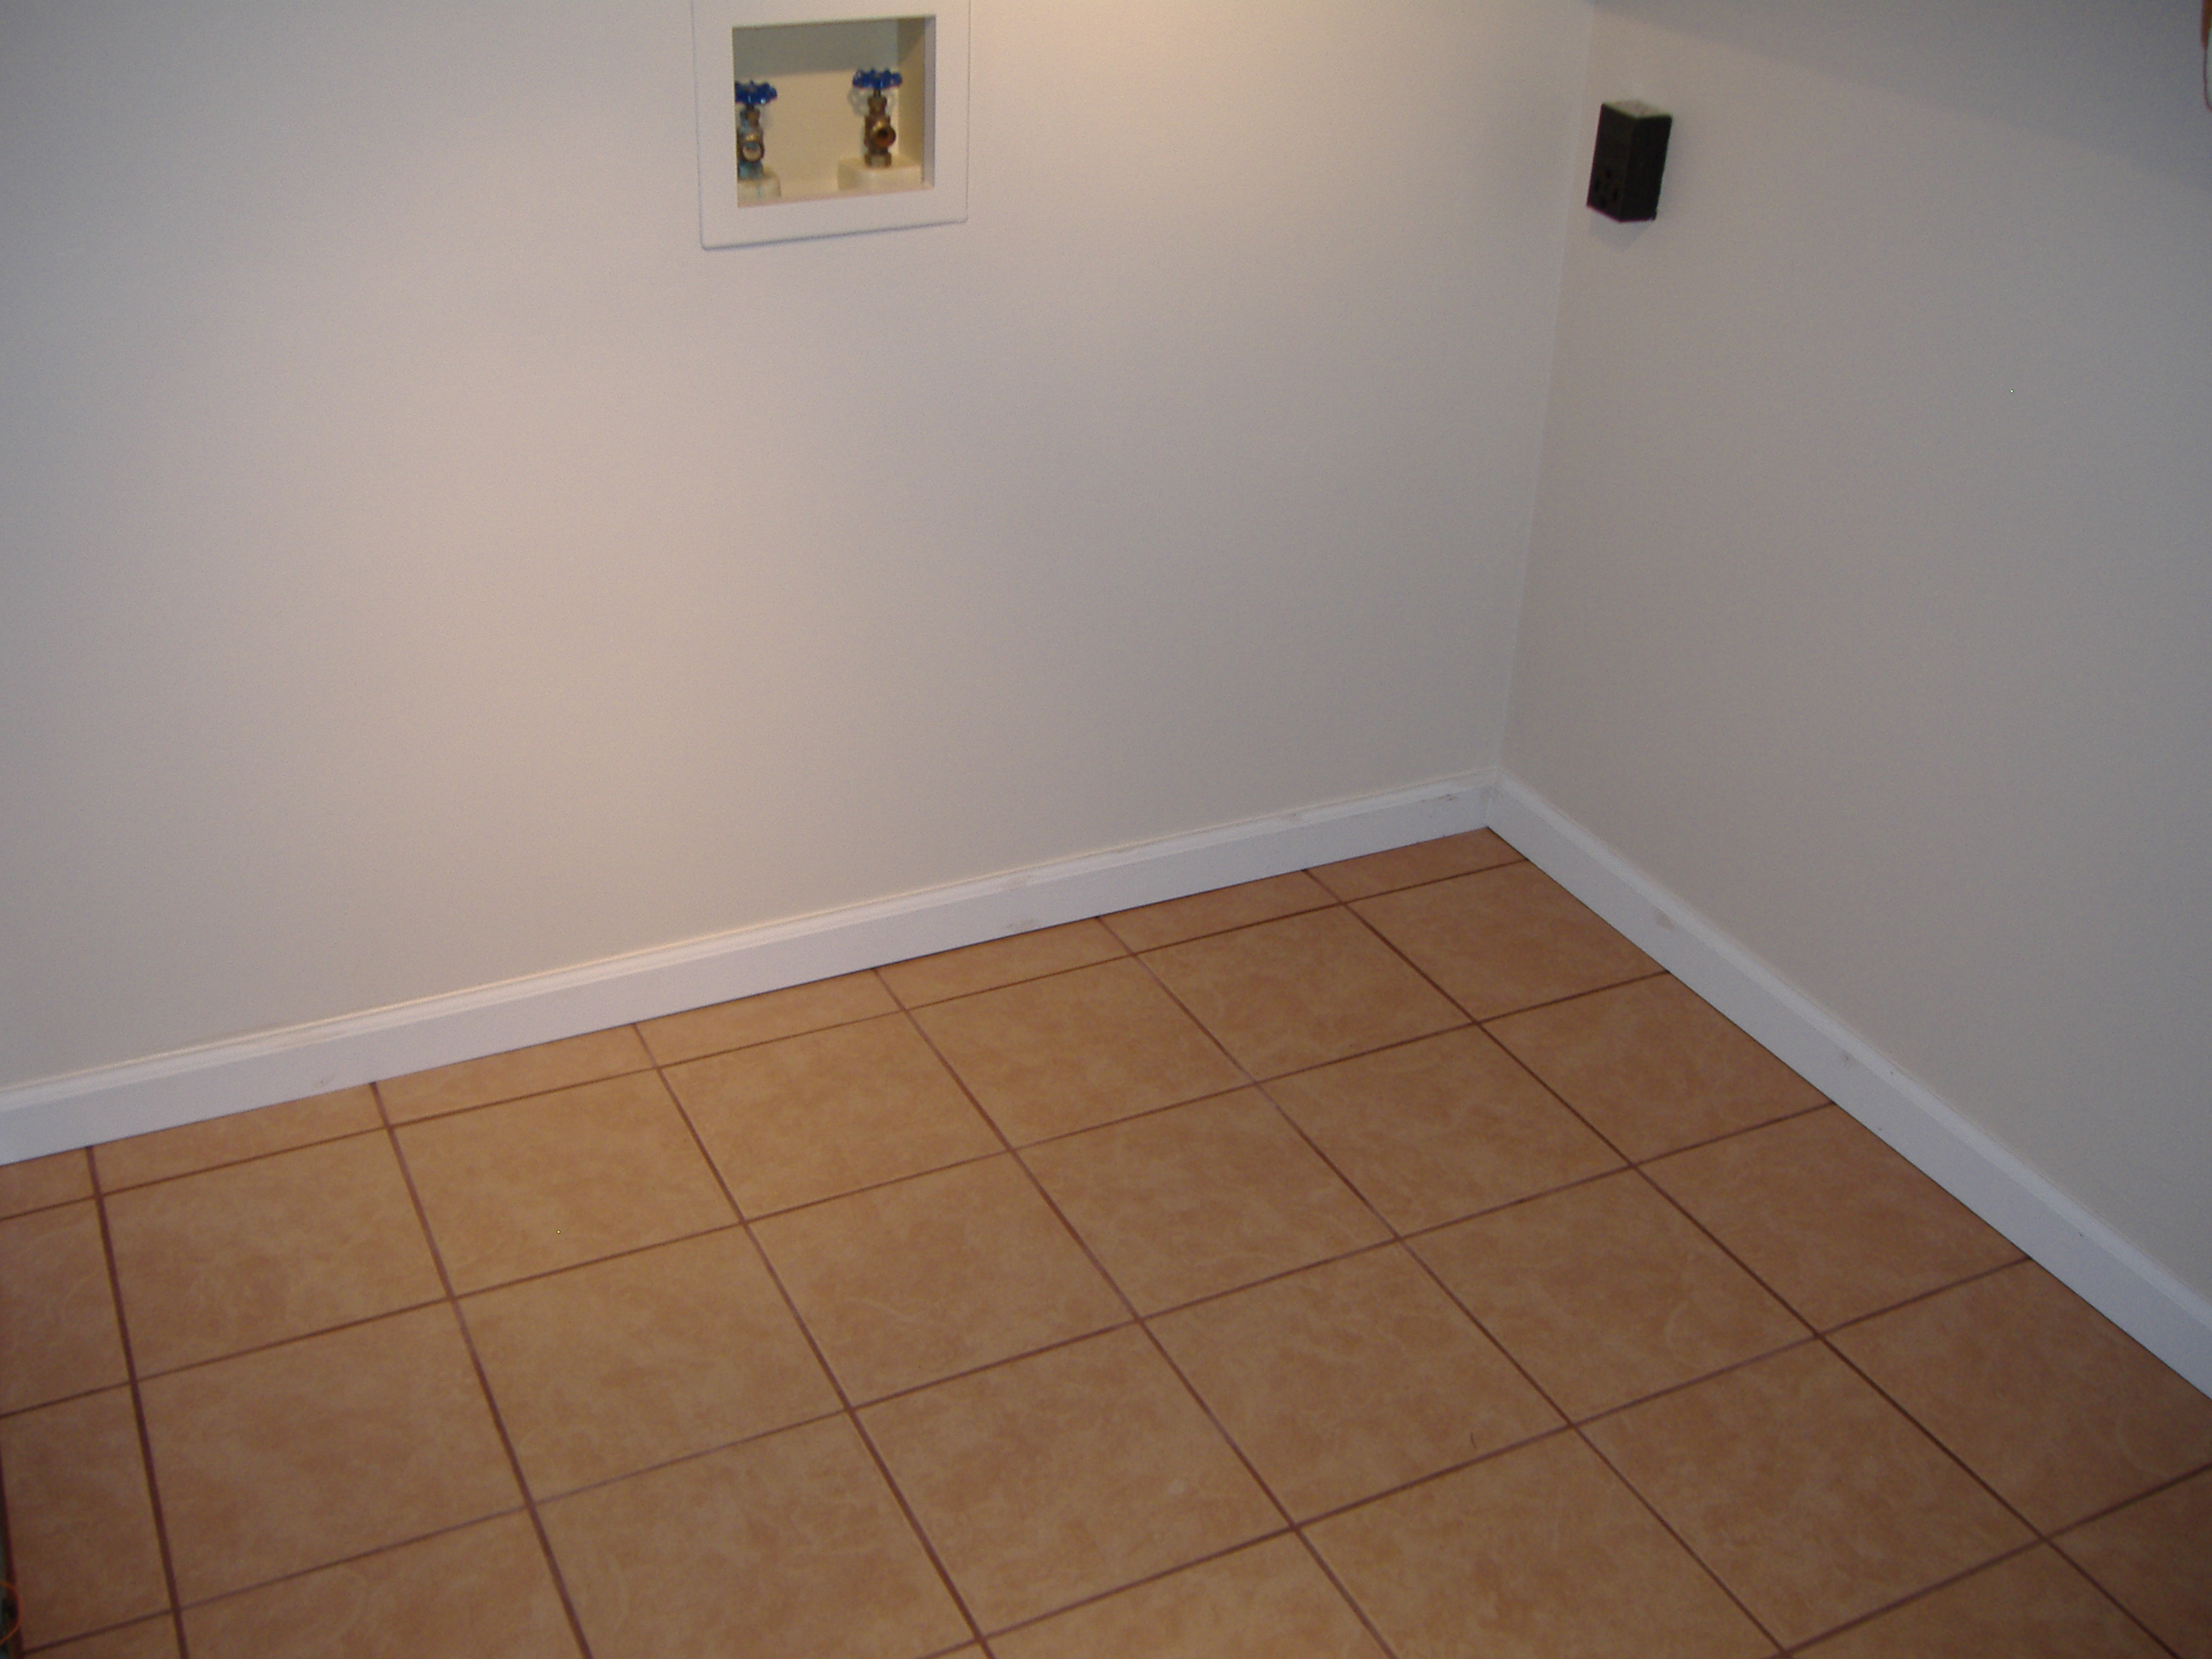 Once The New Drywall Was Installed Finished And Painted Ceramic Tile Floor Finishing With Base Boards